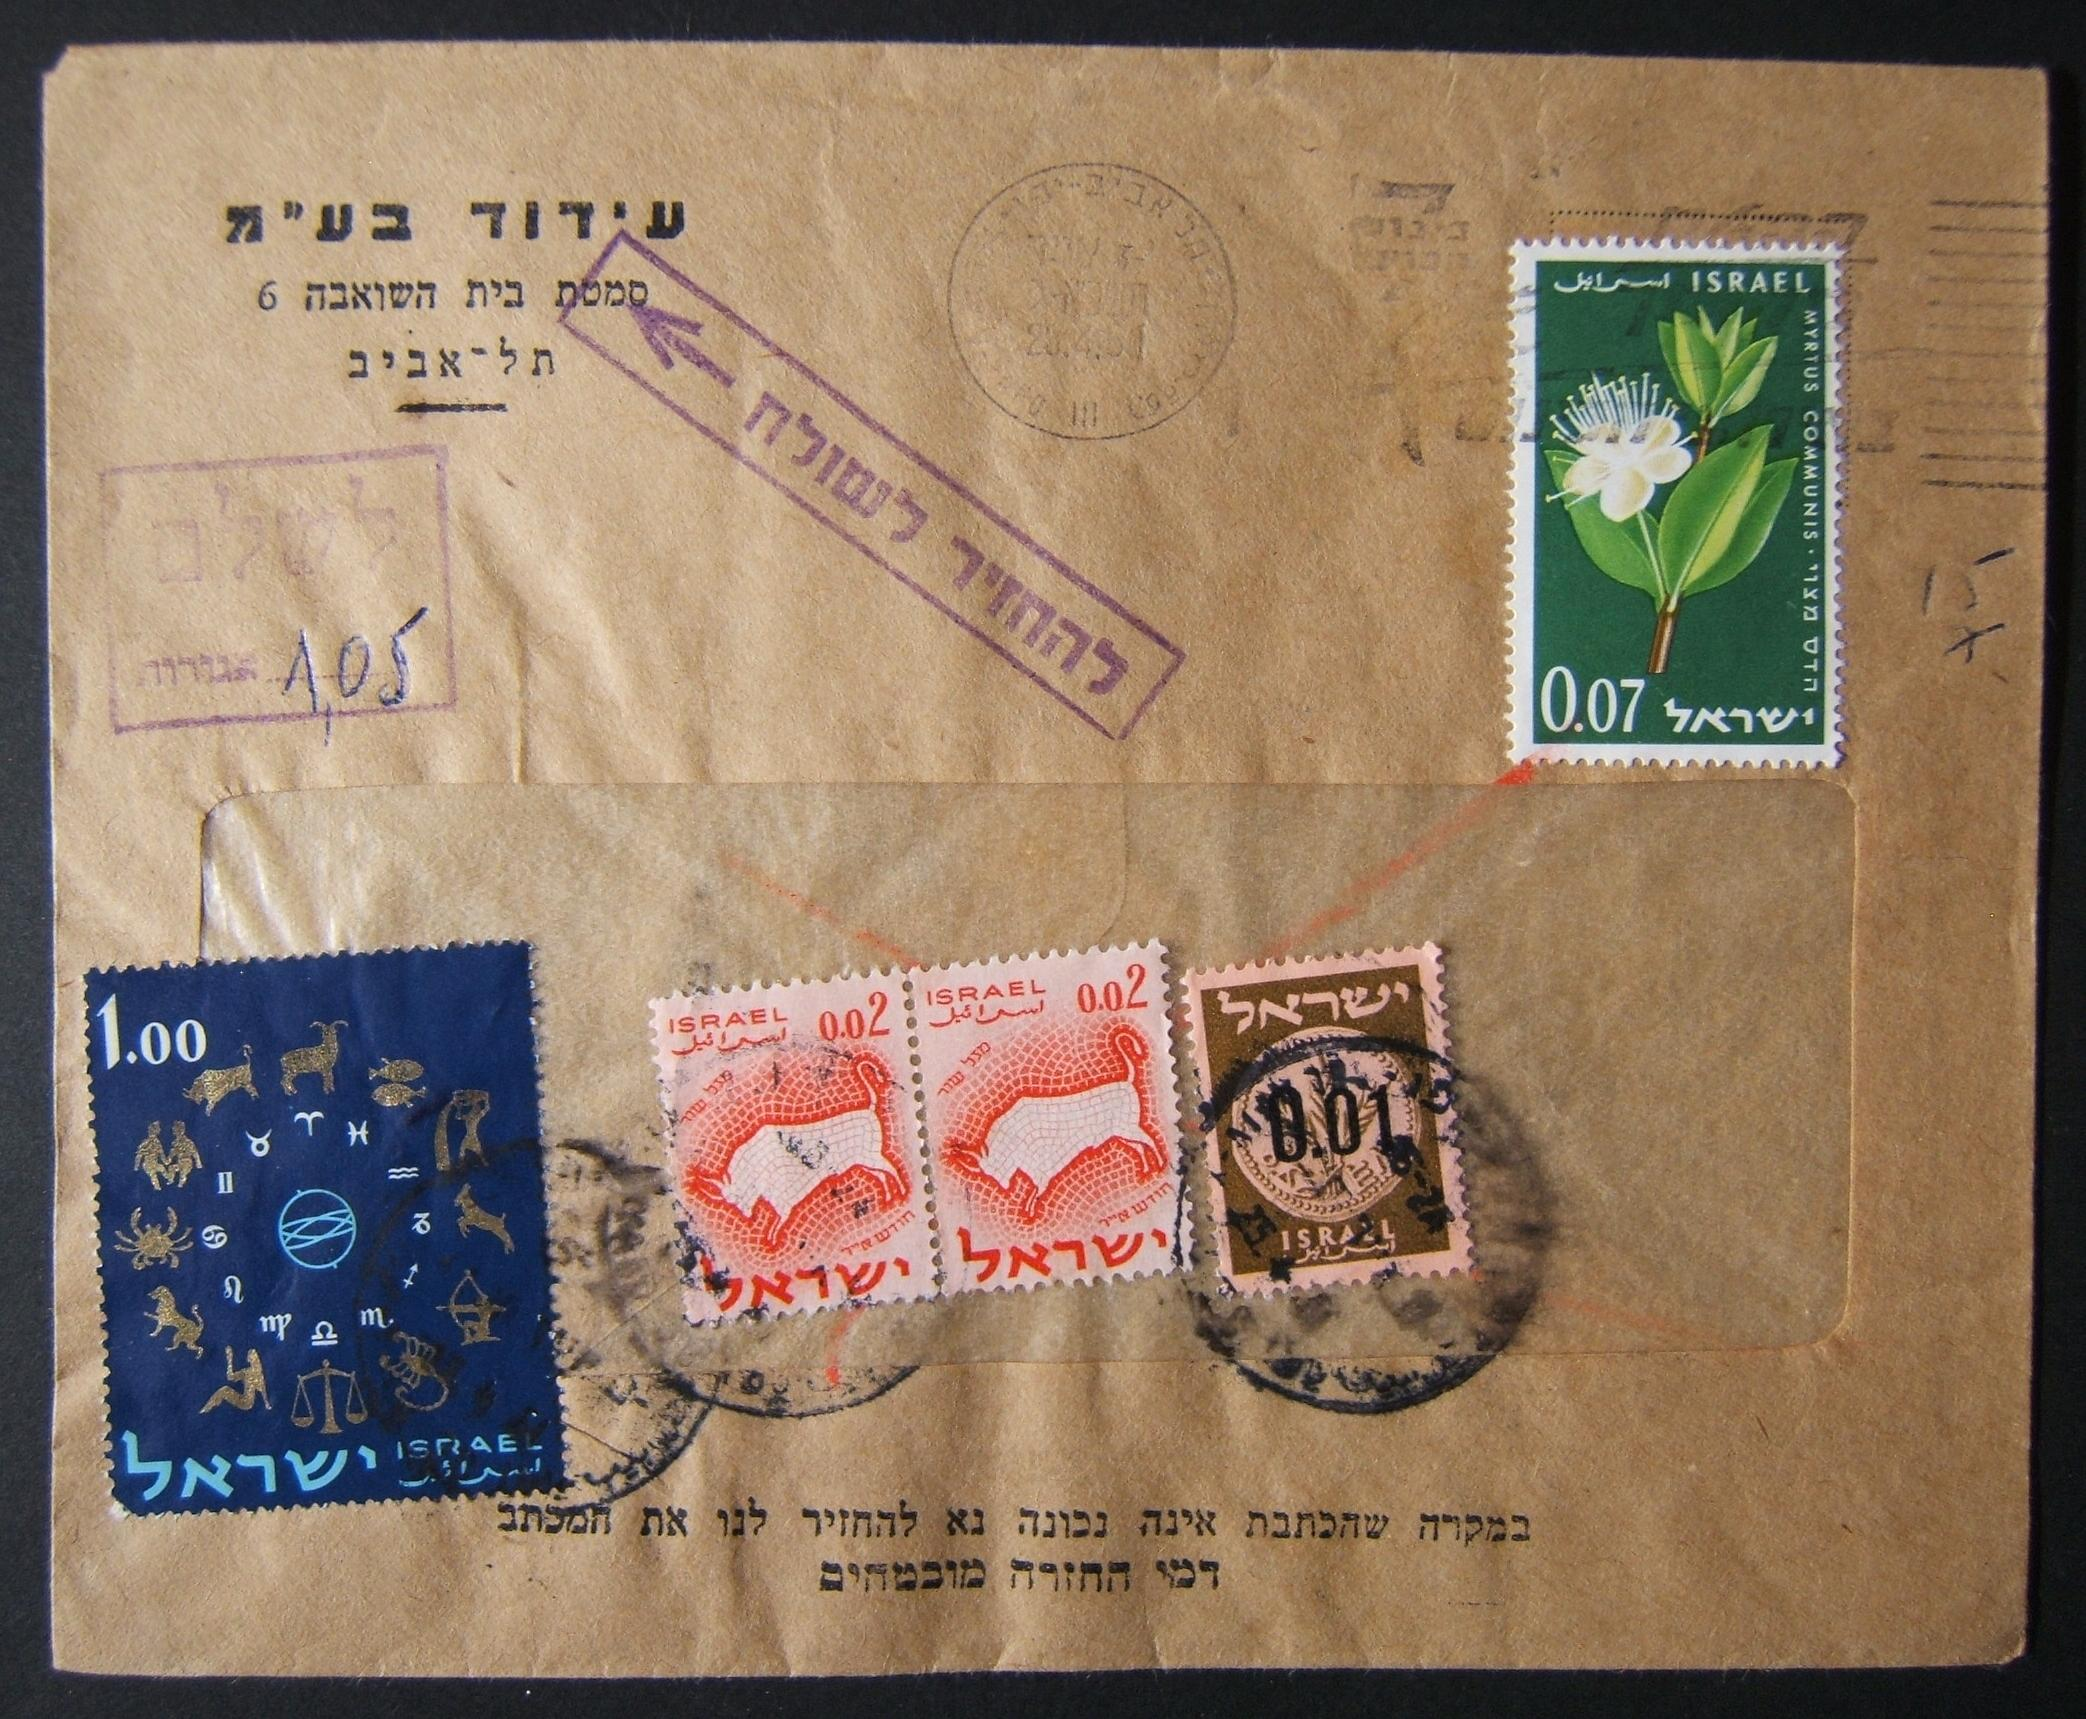 1961 domestic 'top of the pile' taxed franking: 23-4-61 printed matter commercial cover ex TLV branch of Idud Ltd. franked 7 Ag at the DO-10 period PM rate using 1961 Independence